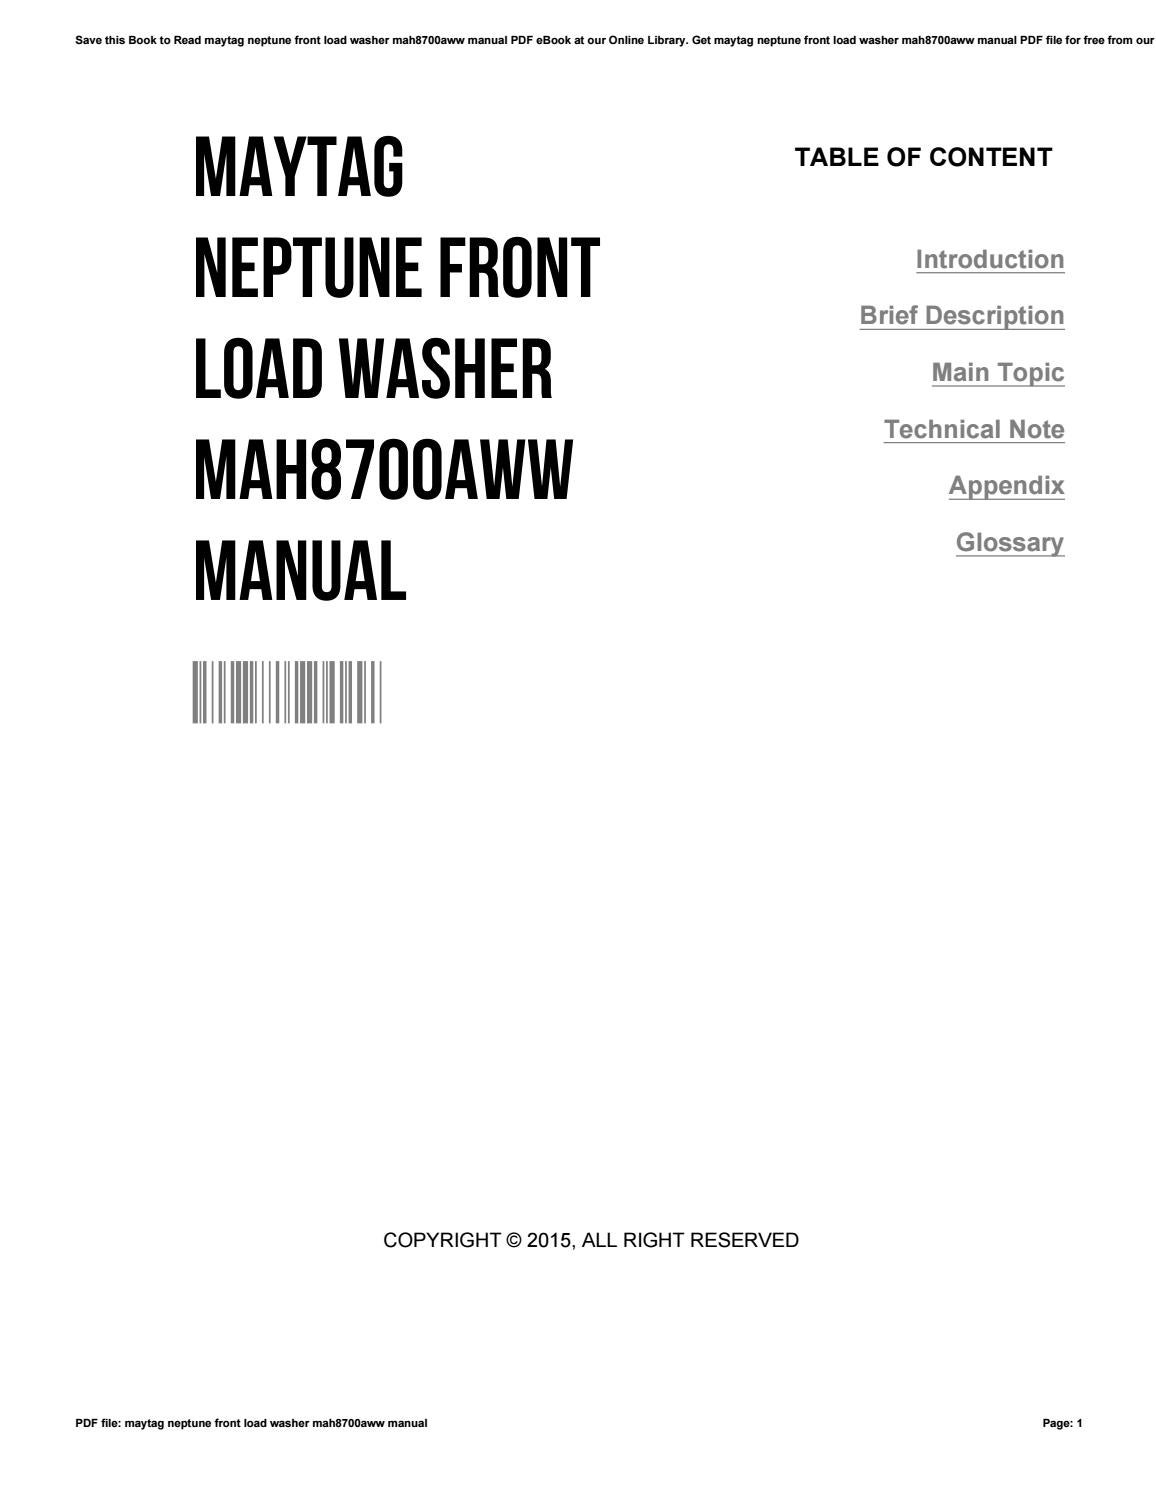 Maytag neptune front load washer mah8700aww manual by